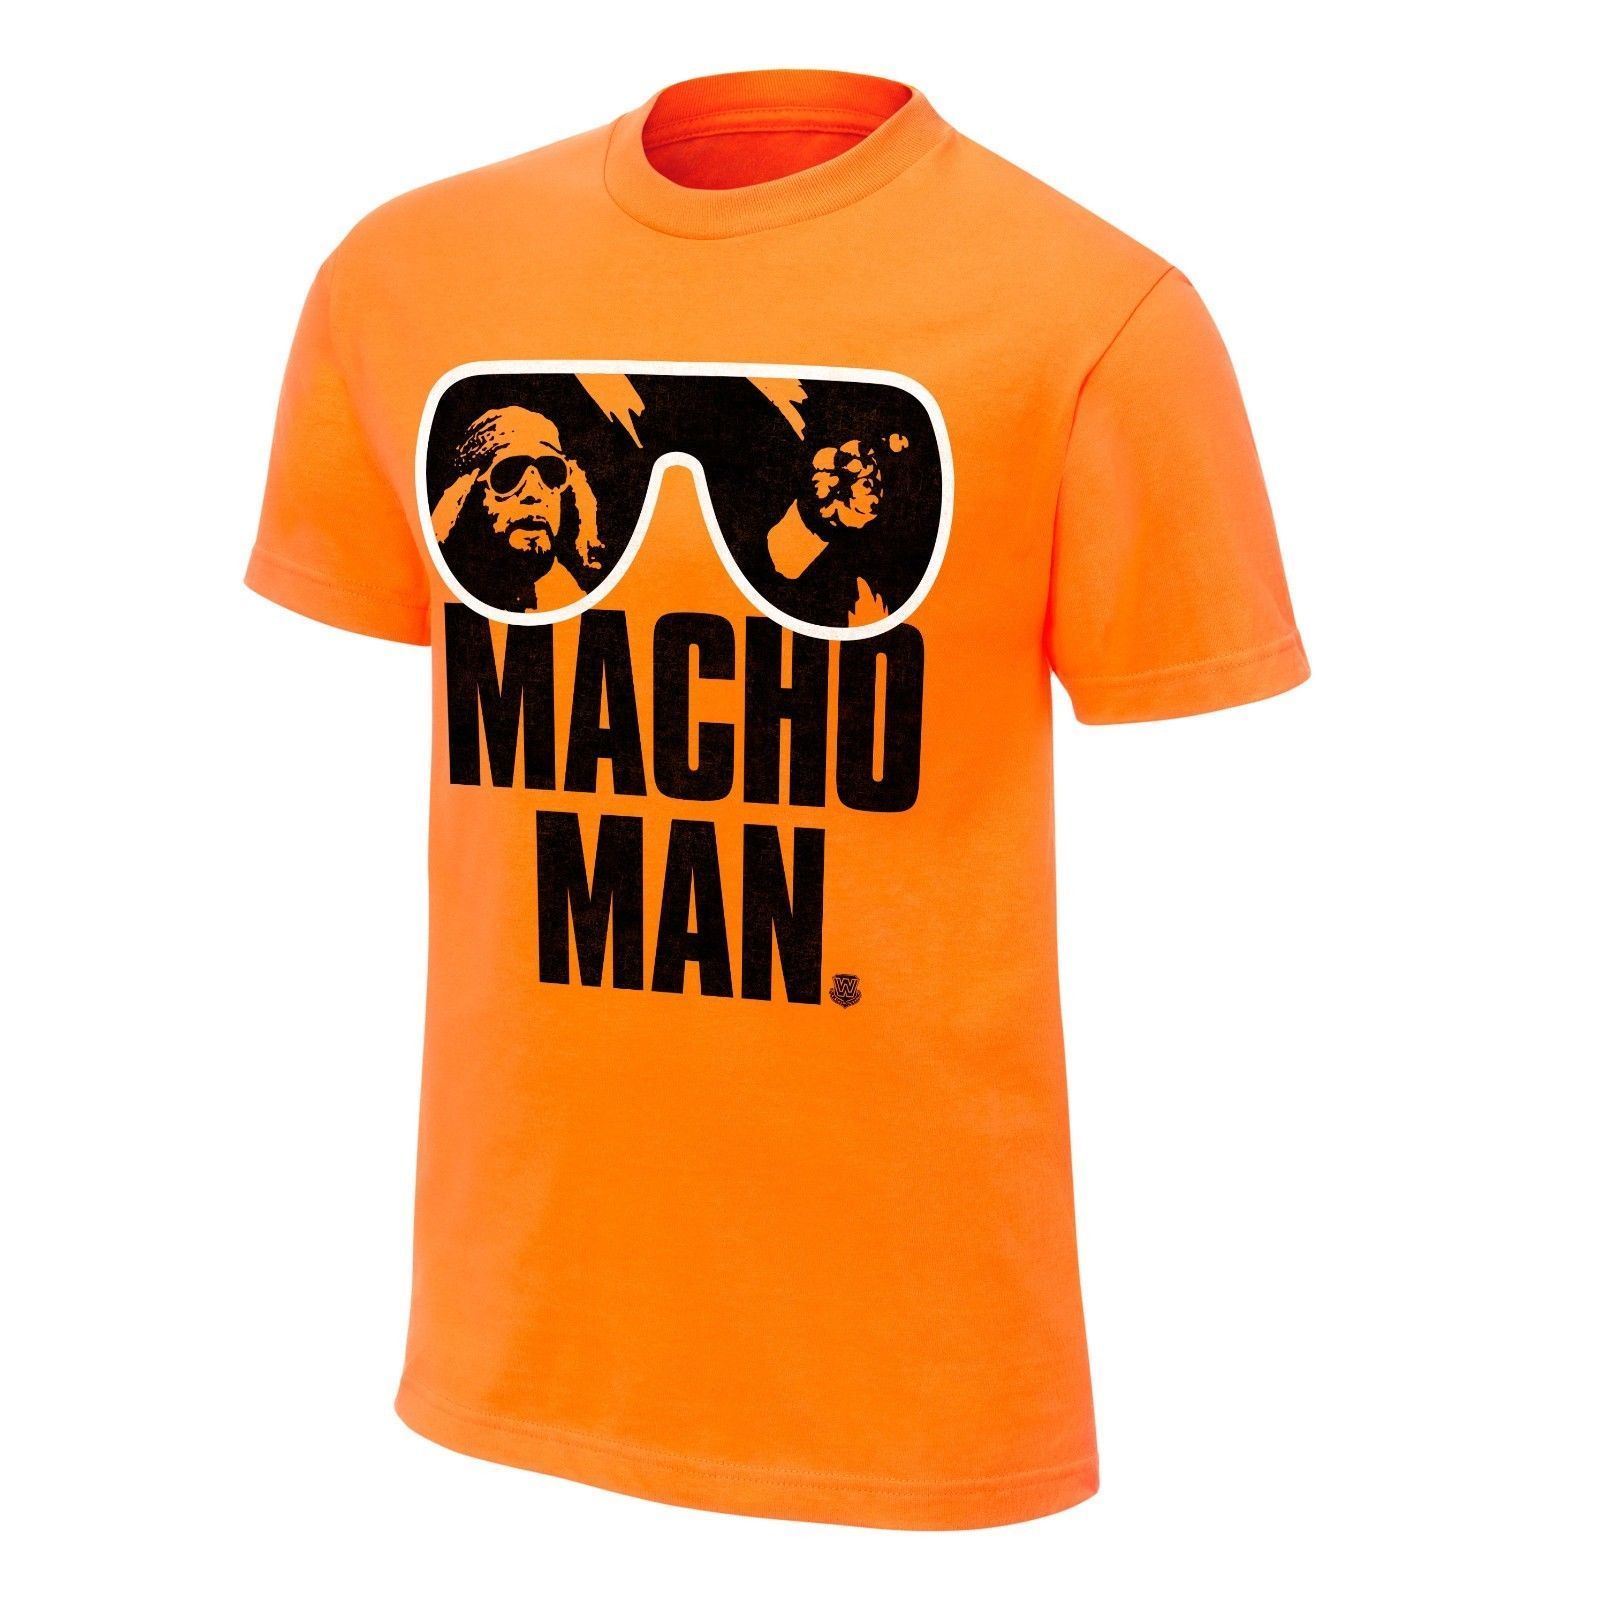 Wwe Macho Man Randy Savage T-Shirt Orange Mens Wrestling Retro Wrestler Tee Mens T-Shirts Fashion 2019 Casual Slim Fit T Shirts